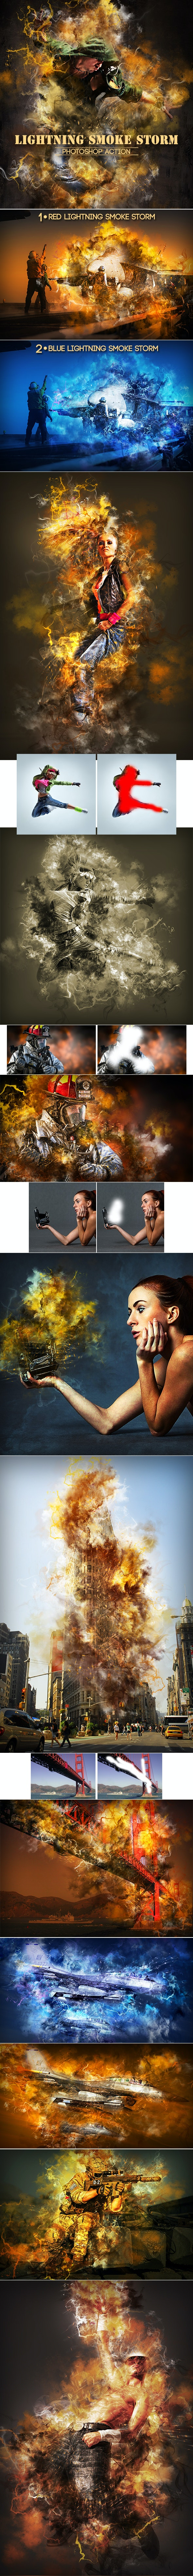 Lightning Smoke Storm Photoshop Action - Photo Effects Actions